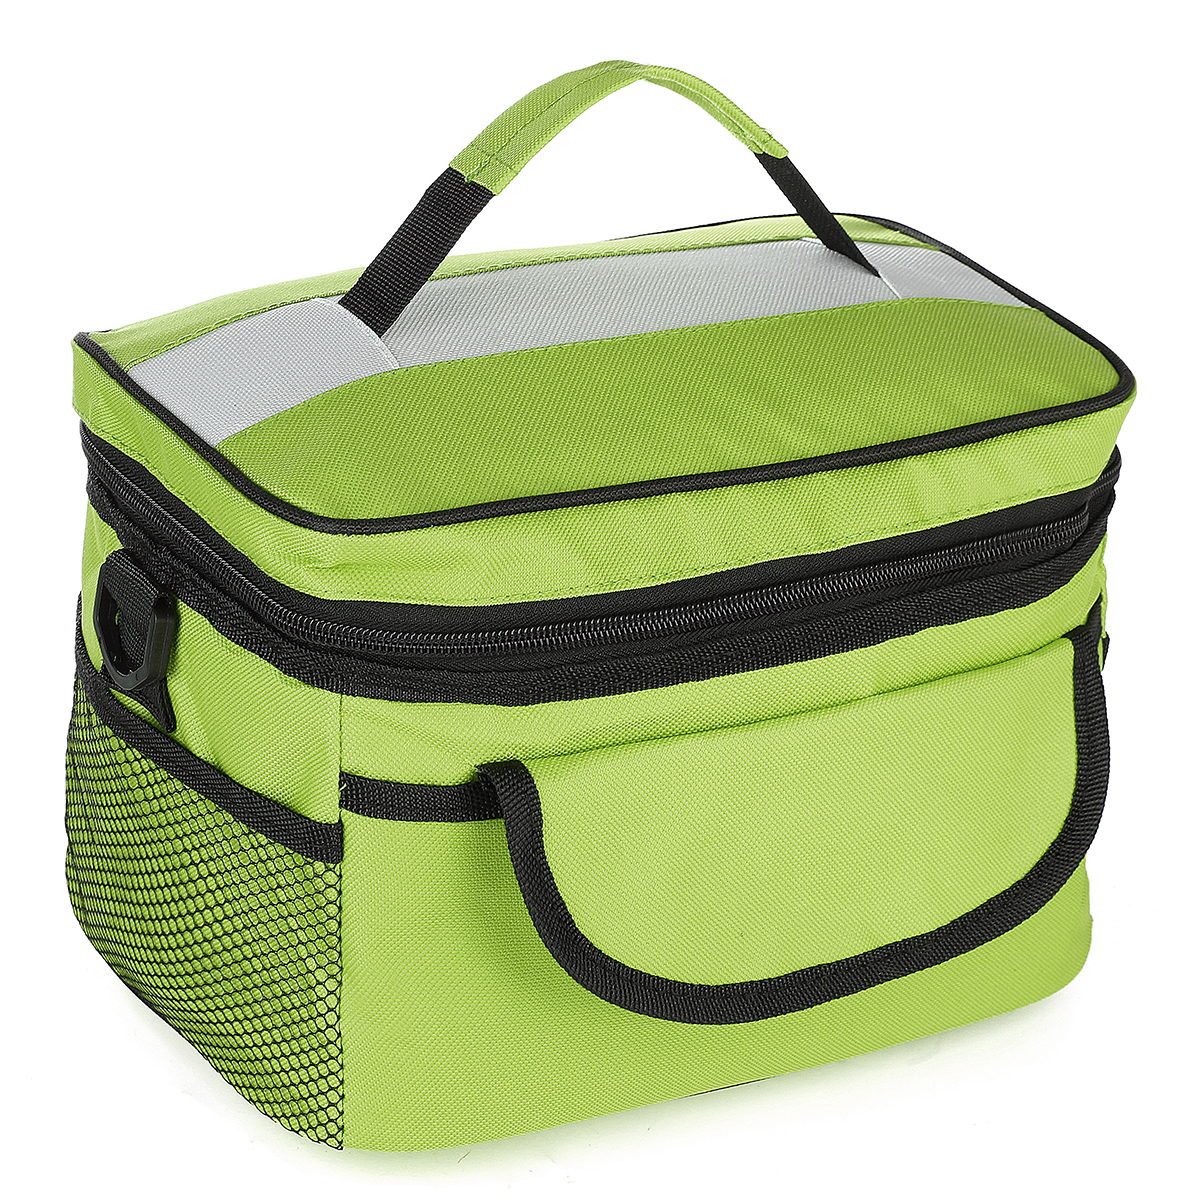 Picnic Backpack Australia 28x17x18cm Oxford Lunch Tote Cooler Backpack Insulated